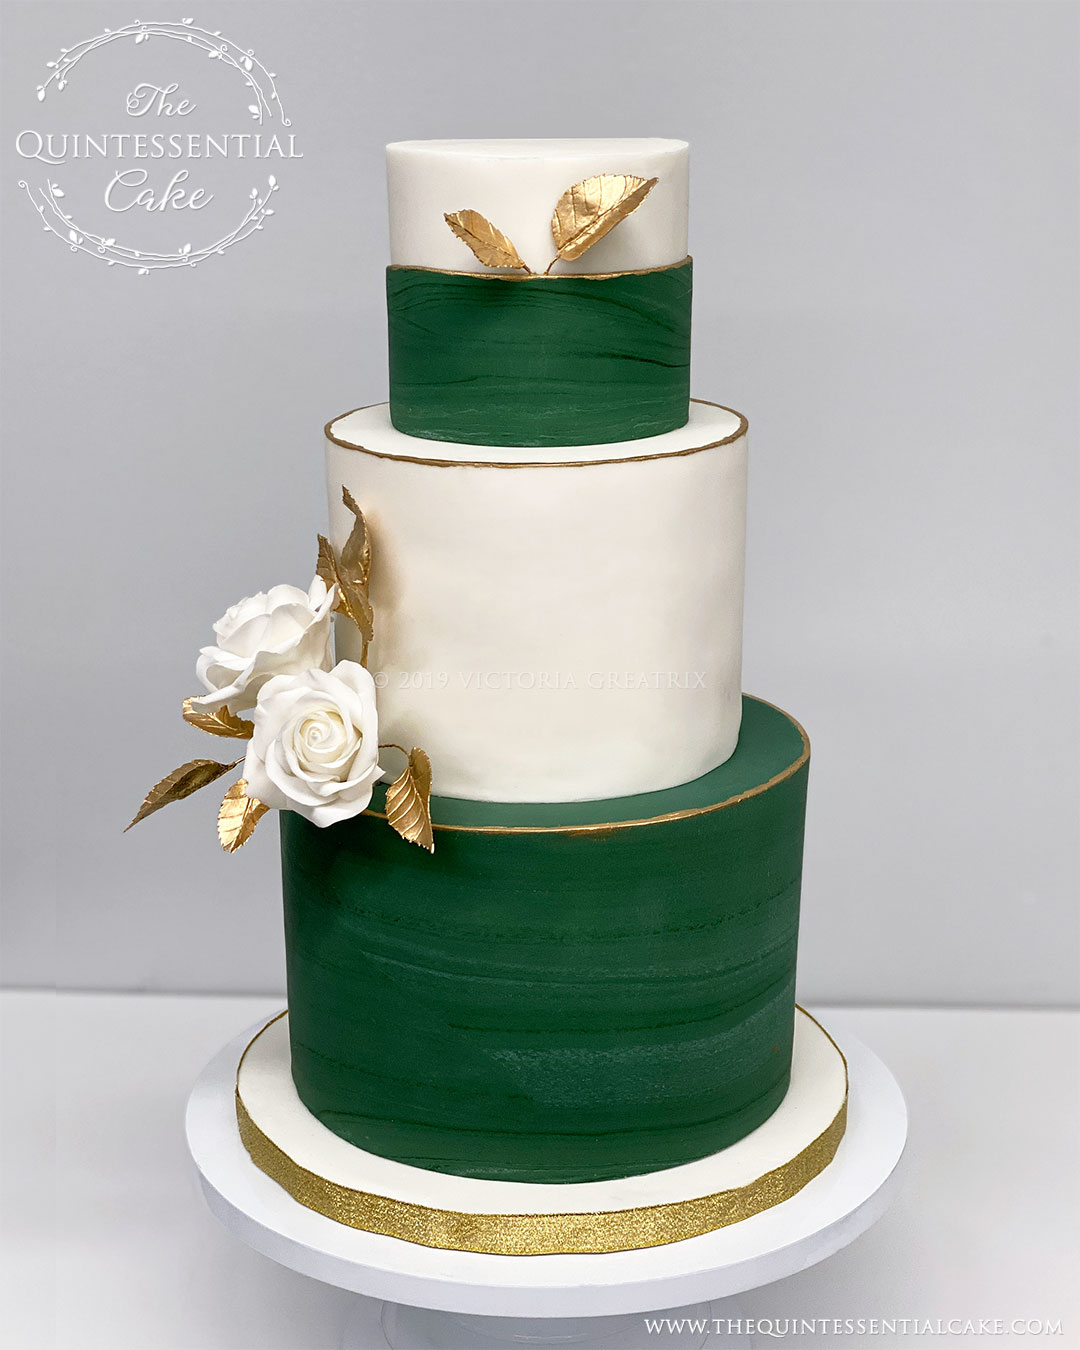 Green Marble Wedding Cake with Gold Accents | The Quintessential Cake | Chicago | Luxury Wedding Cakes |